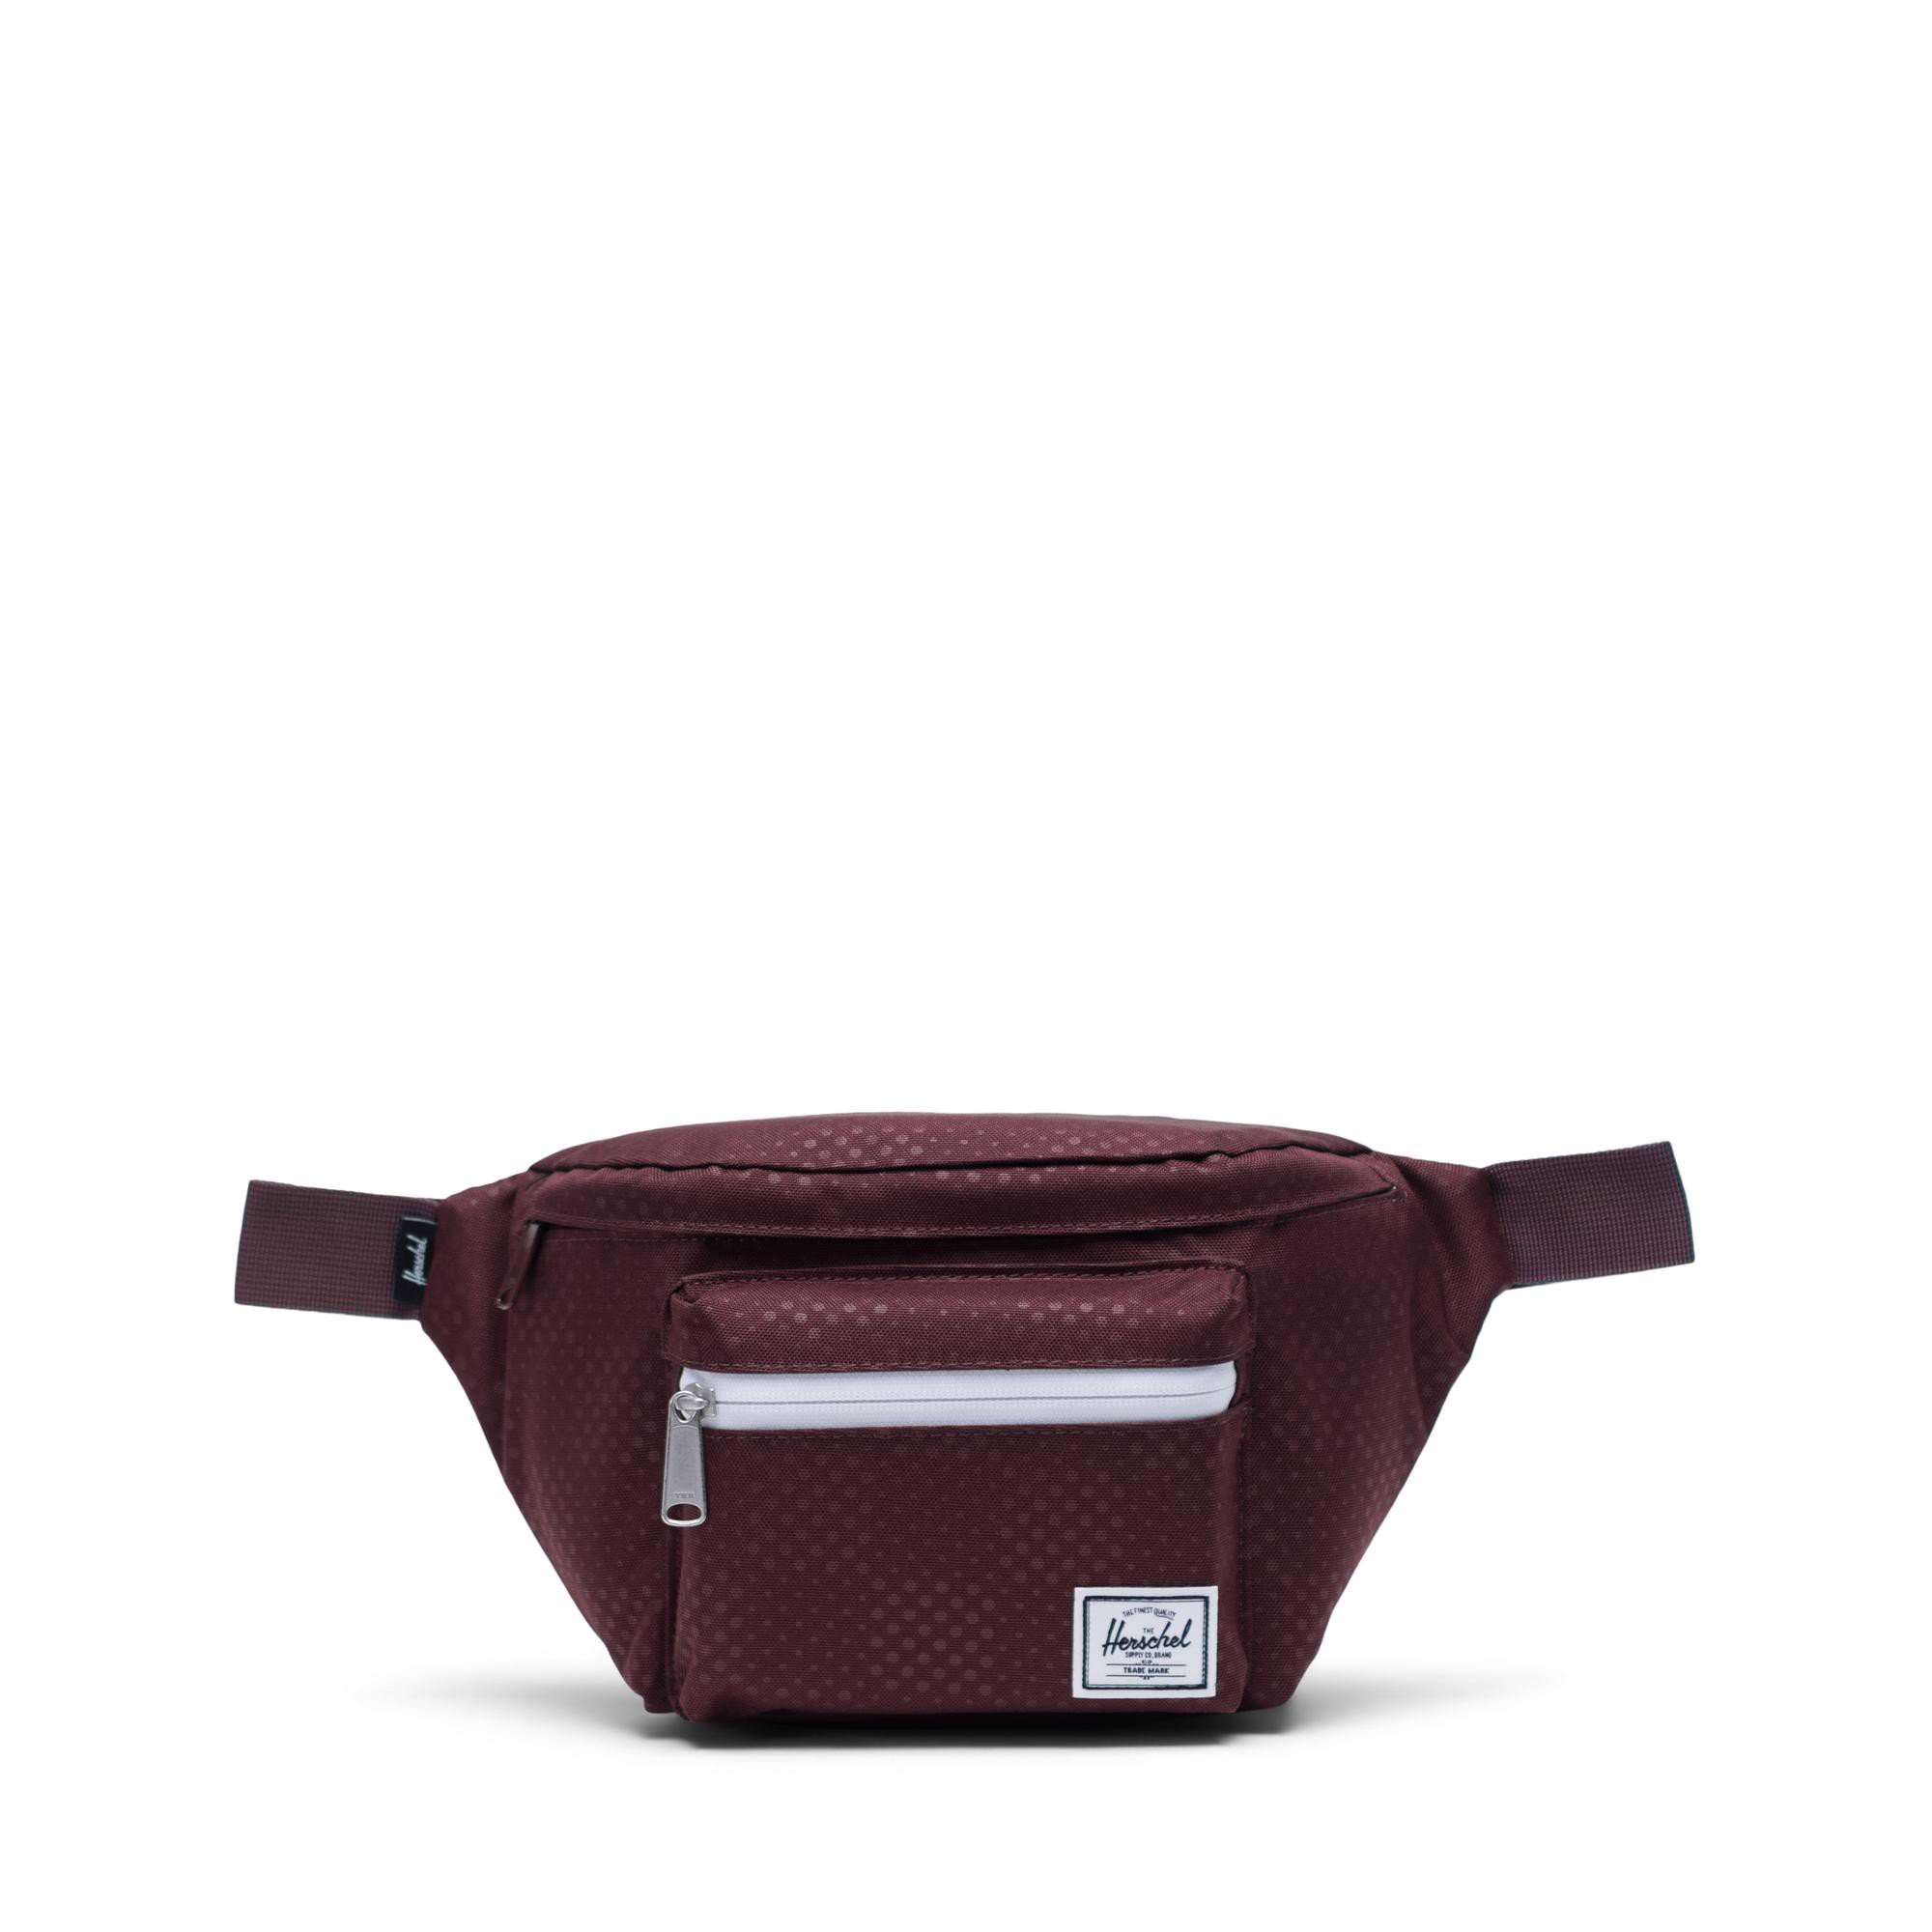 Herschel Seventeen Hip Pack - Plum Dot Check